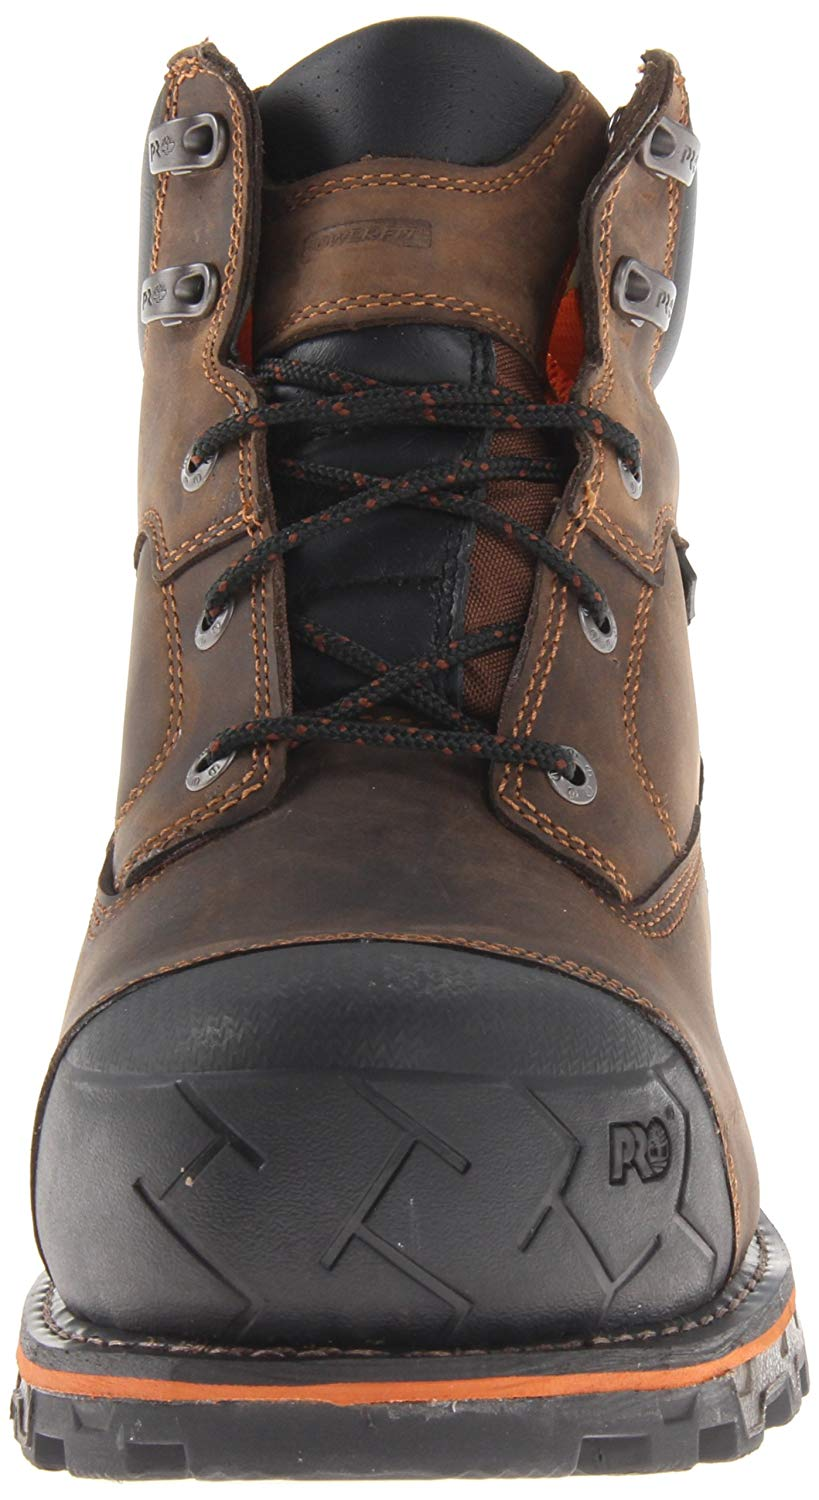 Pro 8 Inch Boondock Composite Toe Waterproof Industrial Work Boot,brown Oiled Distressed Leather,8 M Us